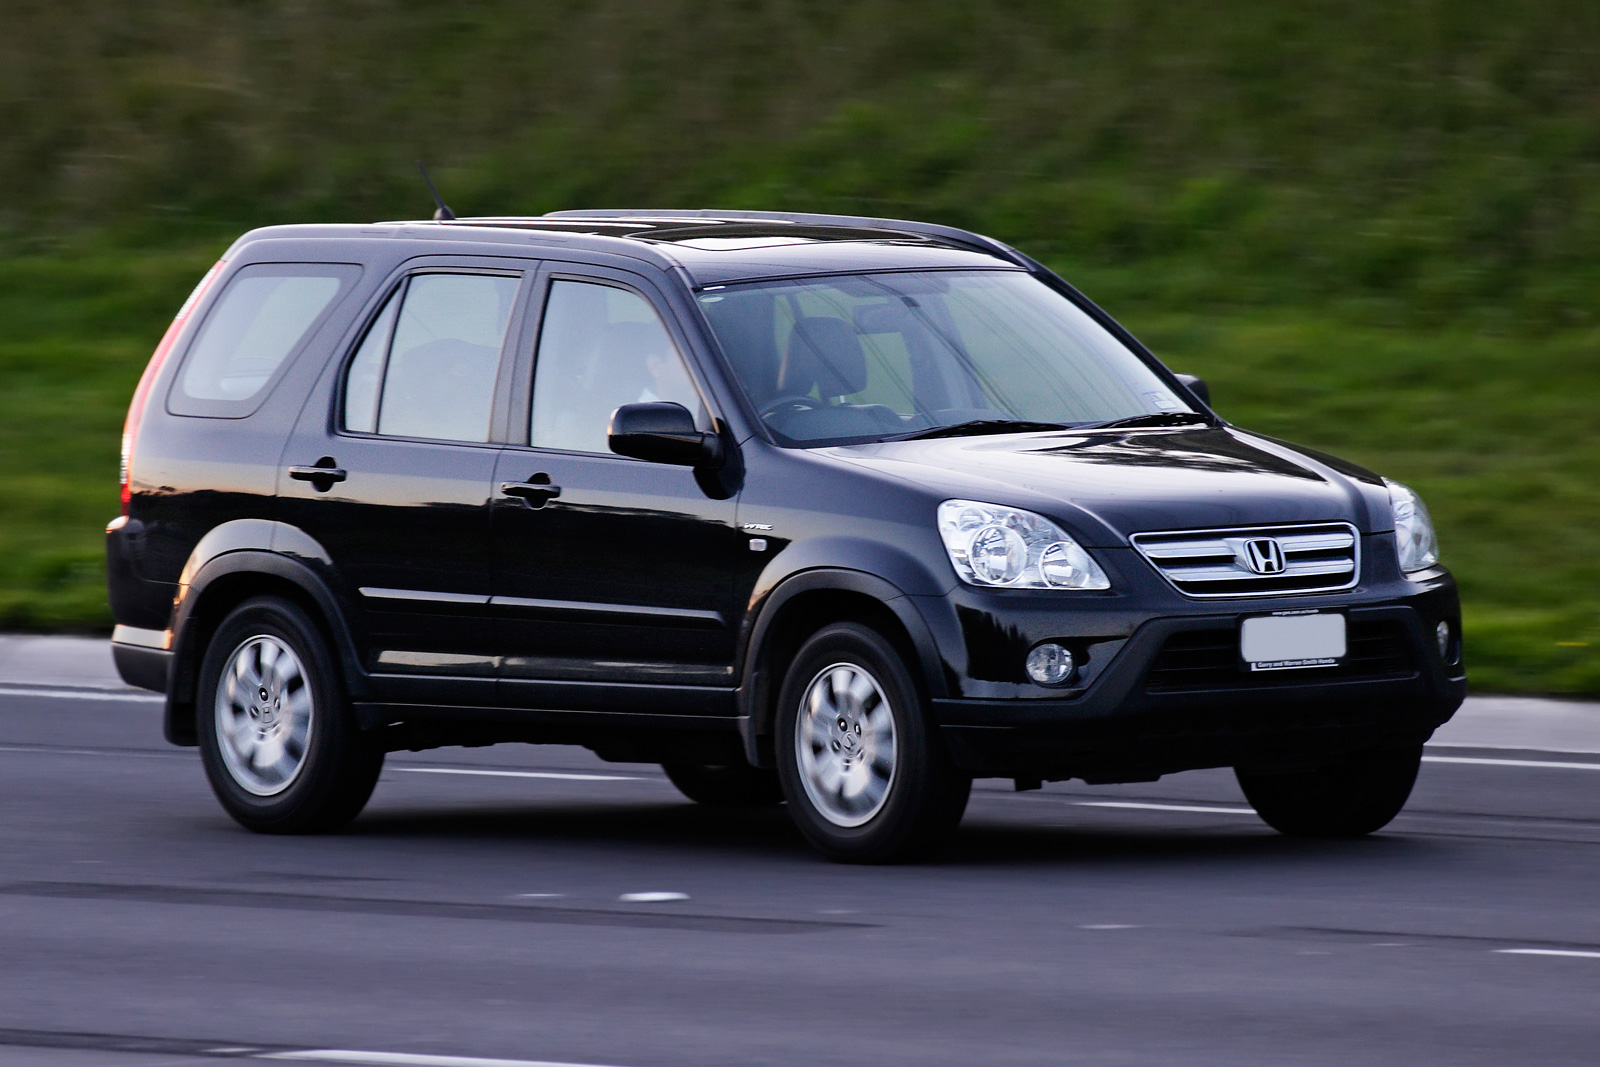 honda crv 2005 review amazing pictures and images look at the car. Black Bedroom Furniture Sets. Home Design Ideas